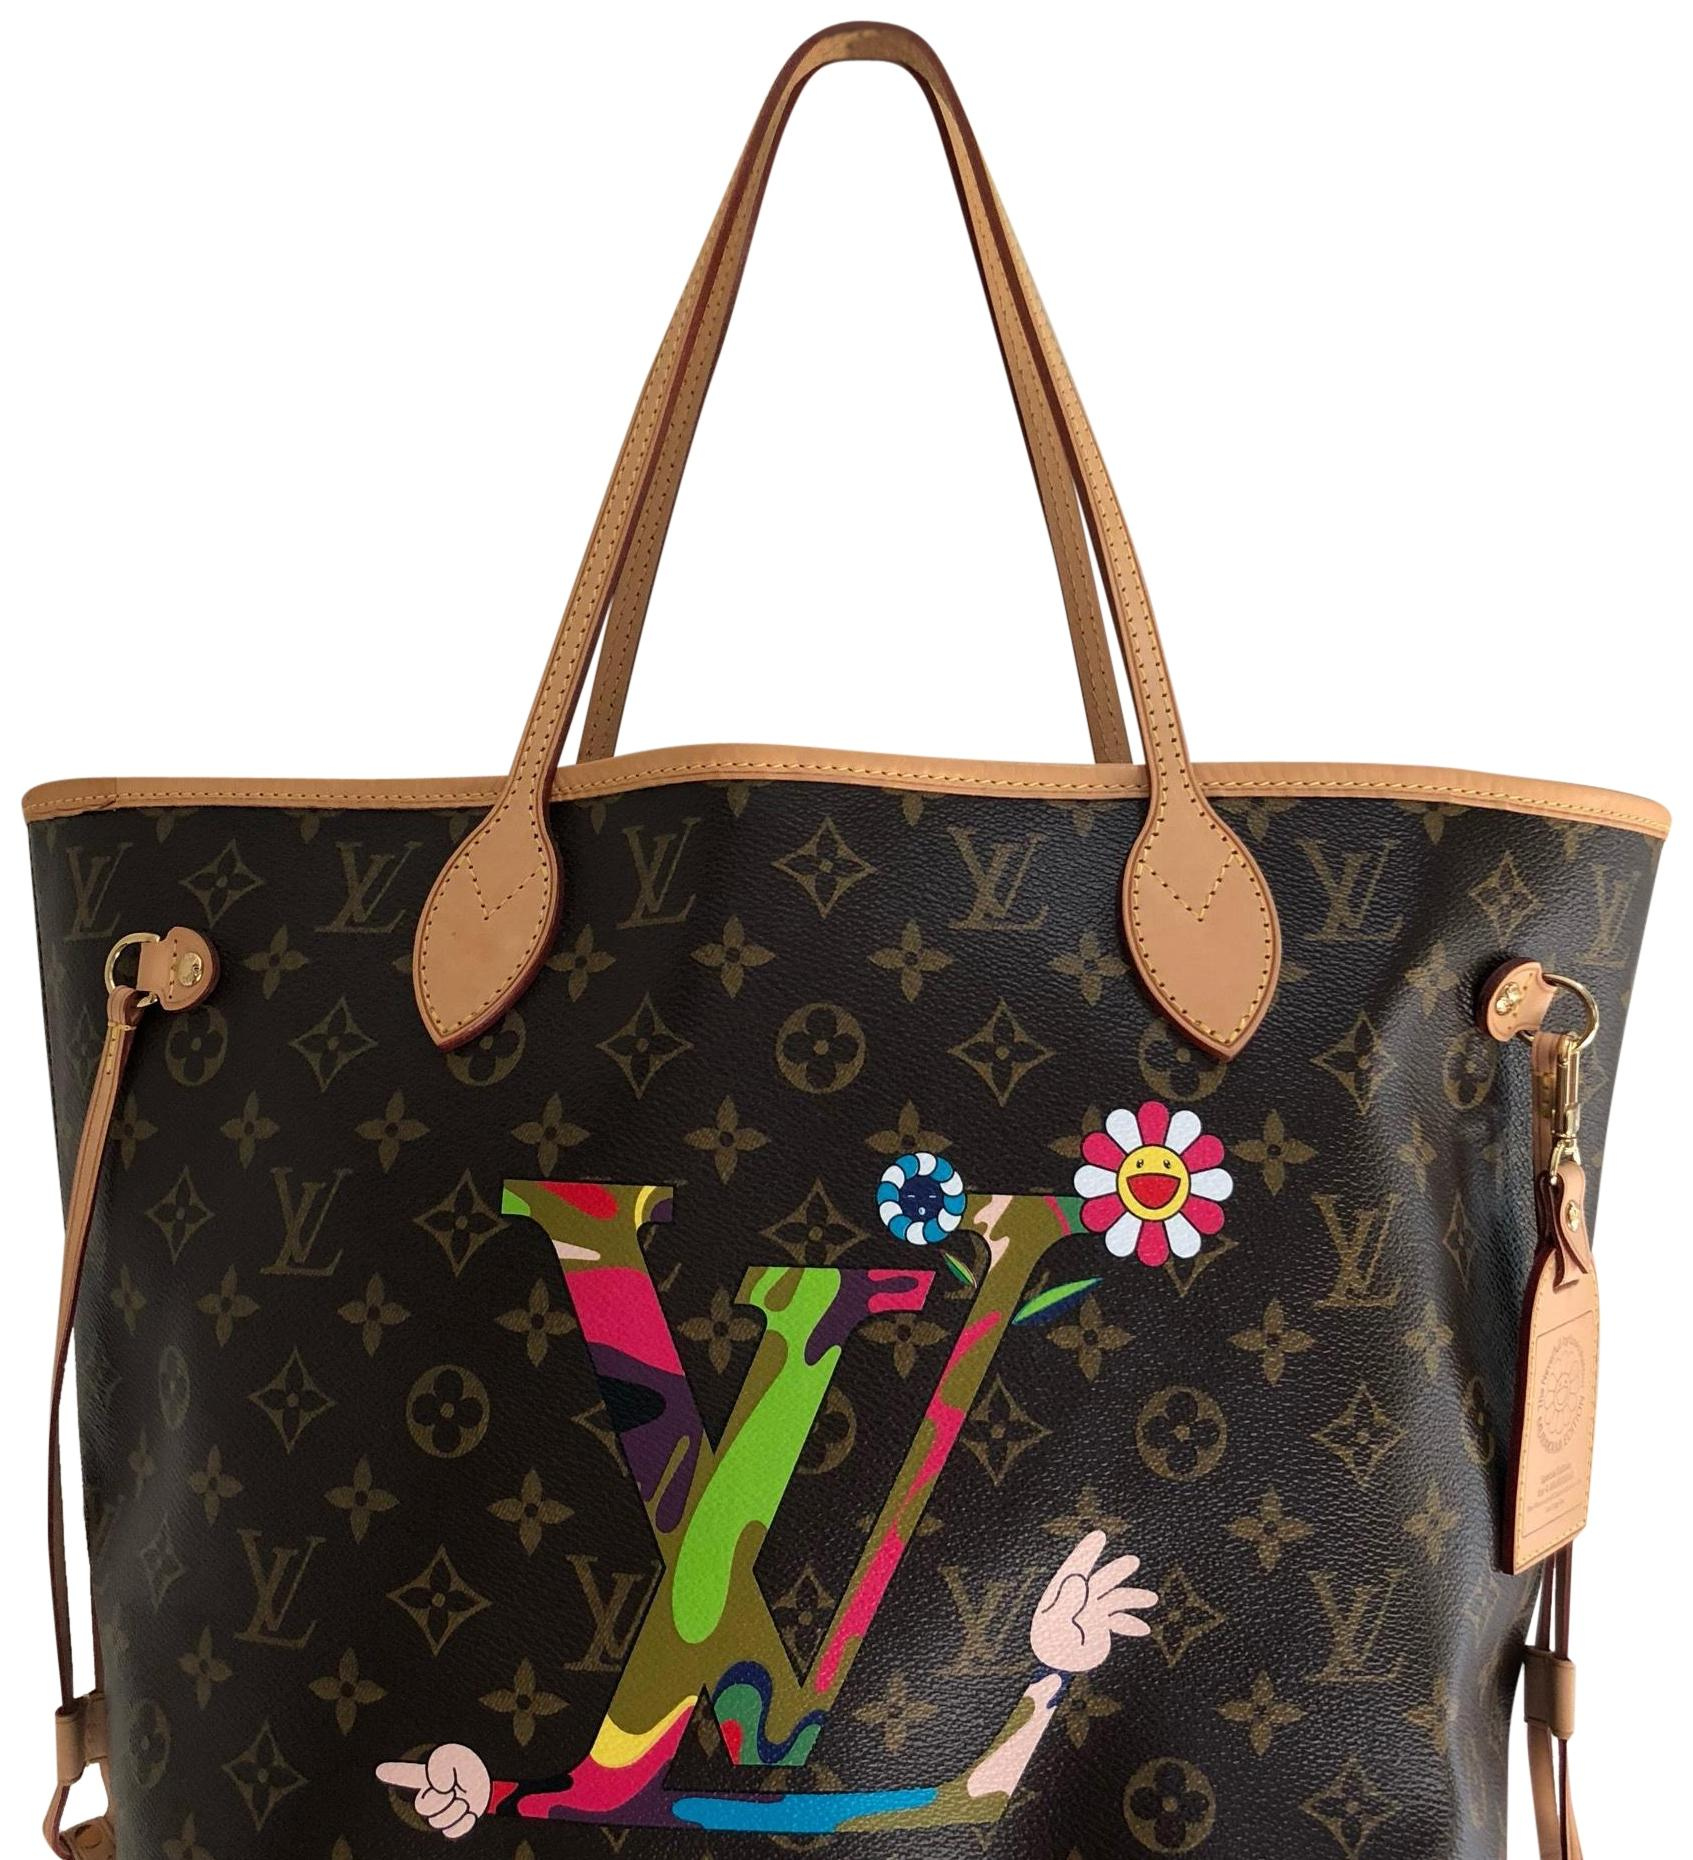 Louis Vuitton Murakami Bag In Monogram Coated And Cowhide Trim